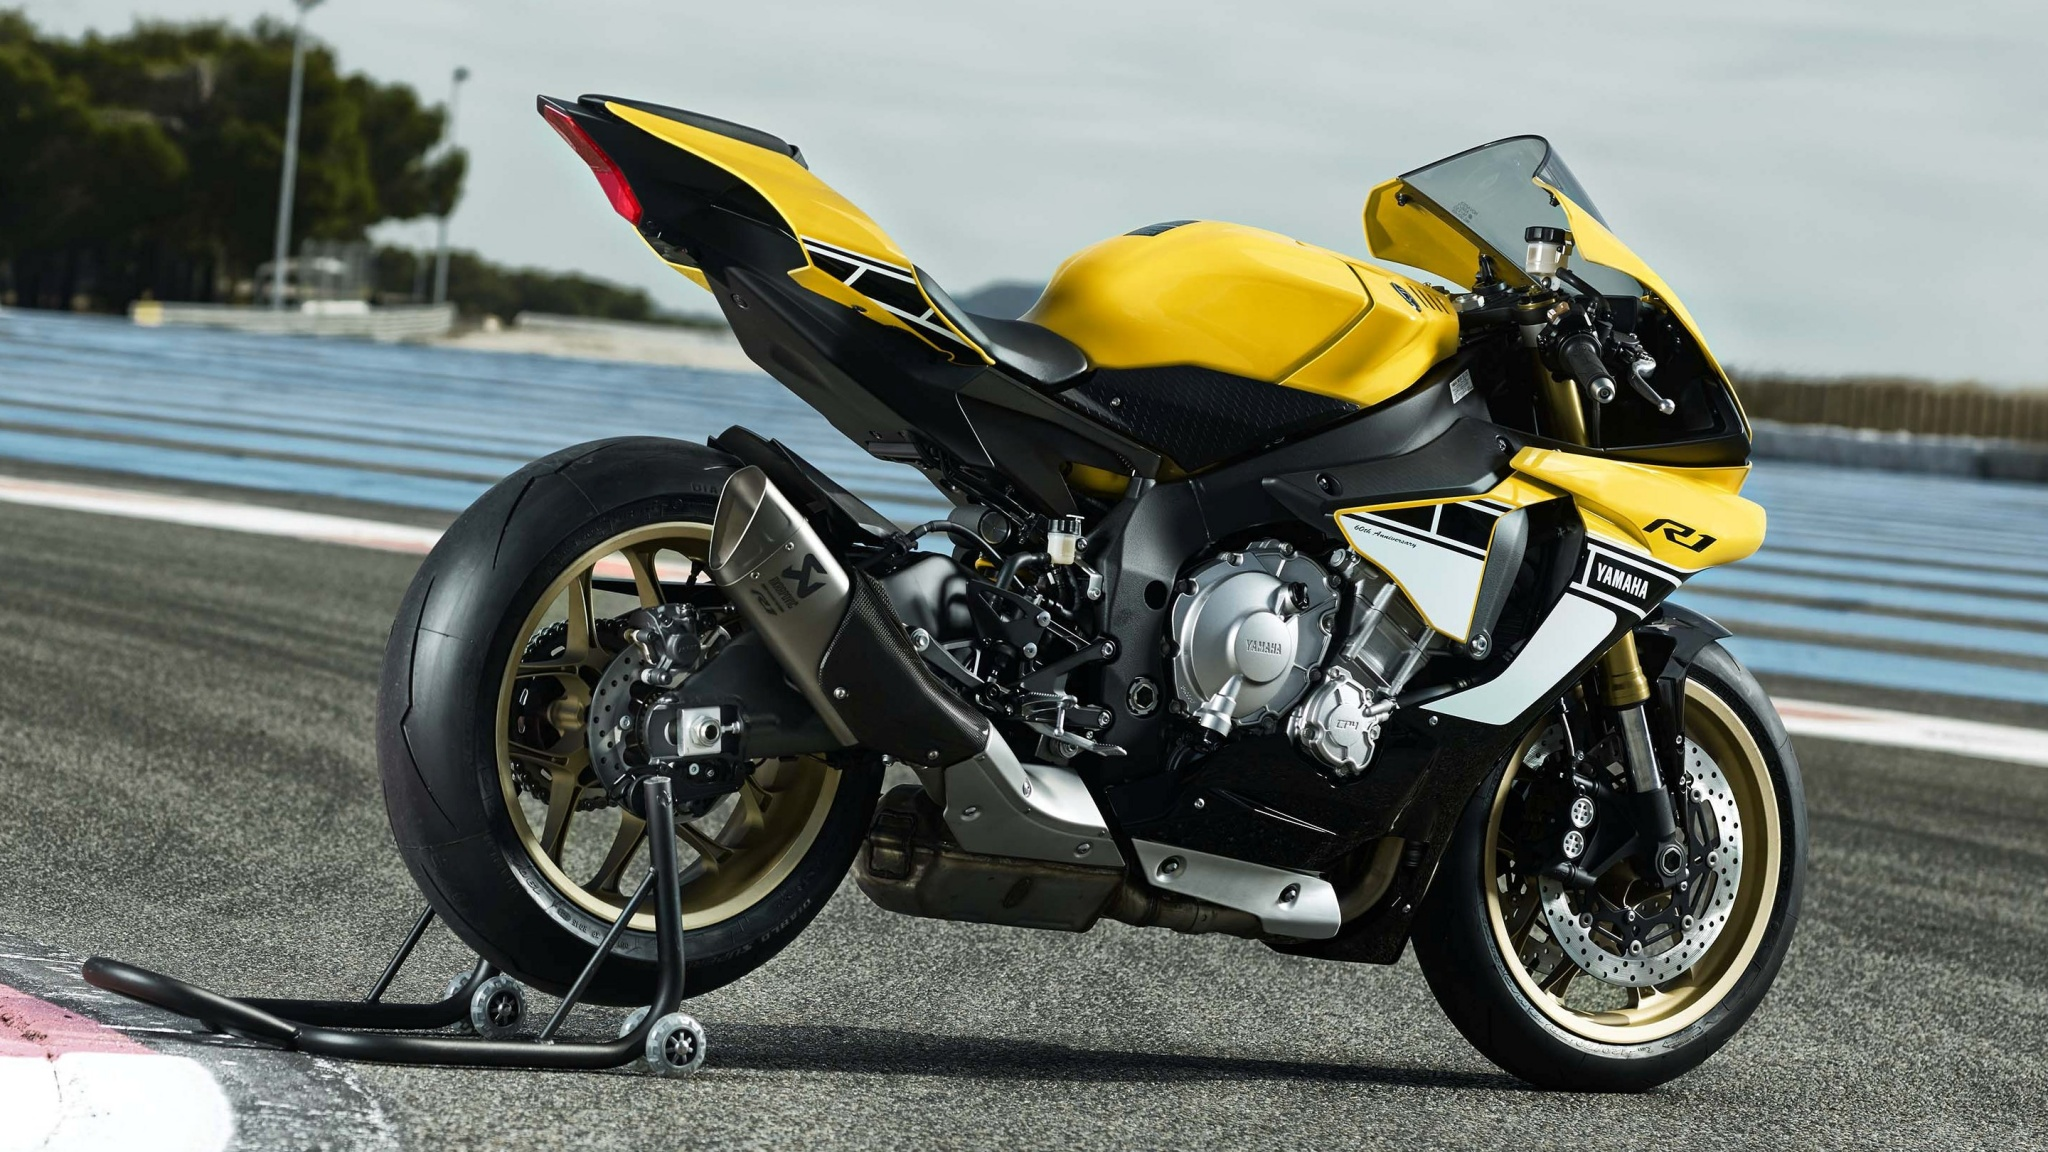 yamaha yzf r1 yellow black 2016 wallpapers 2048x1152 793888. Black Bedroom Furniture Sets. Home Design Ideas